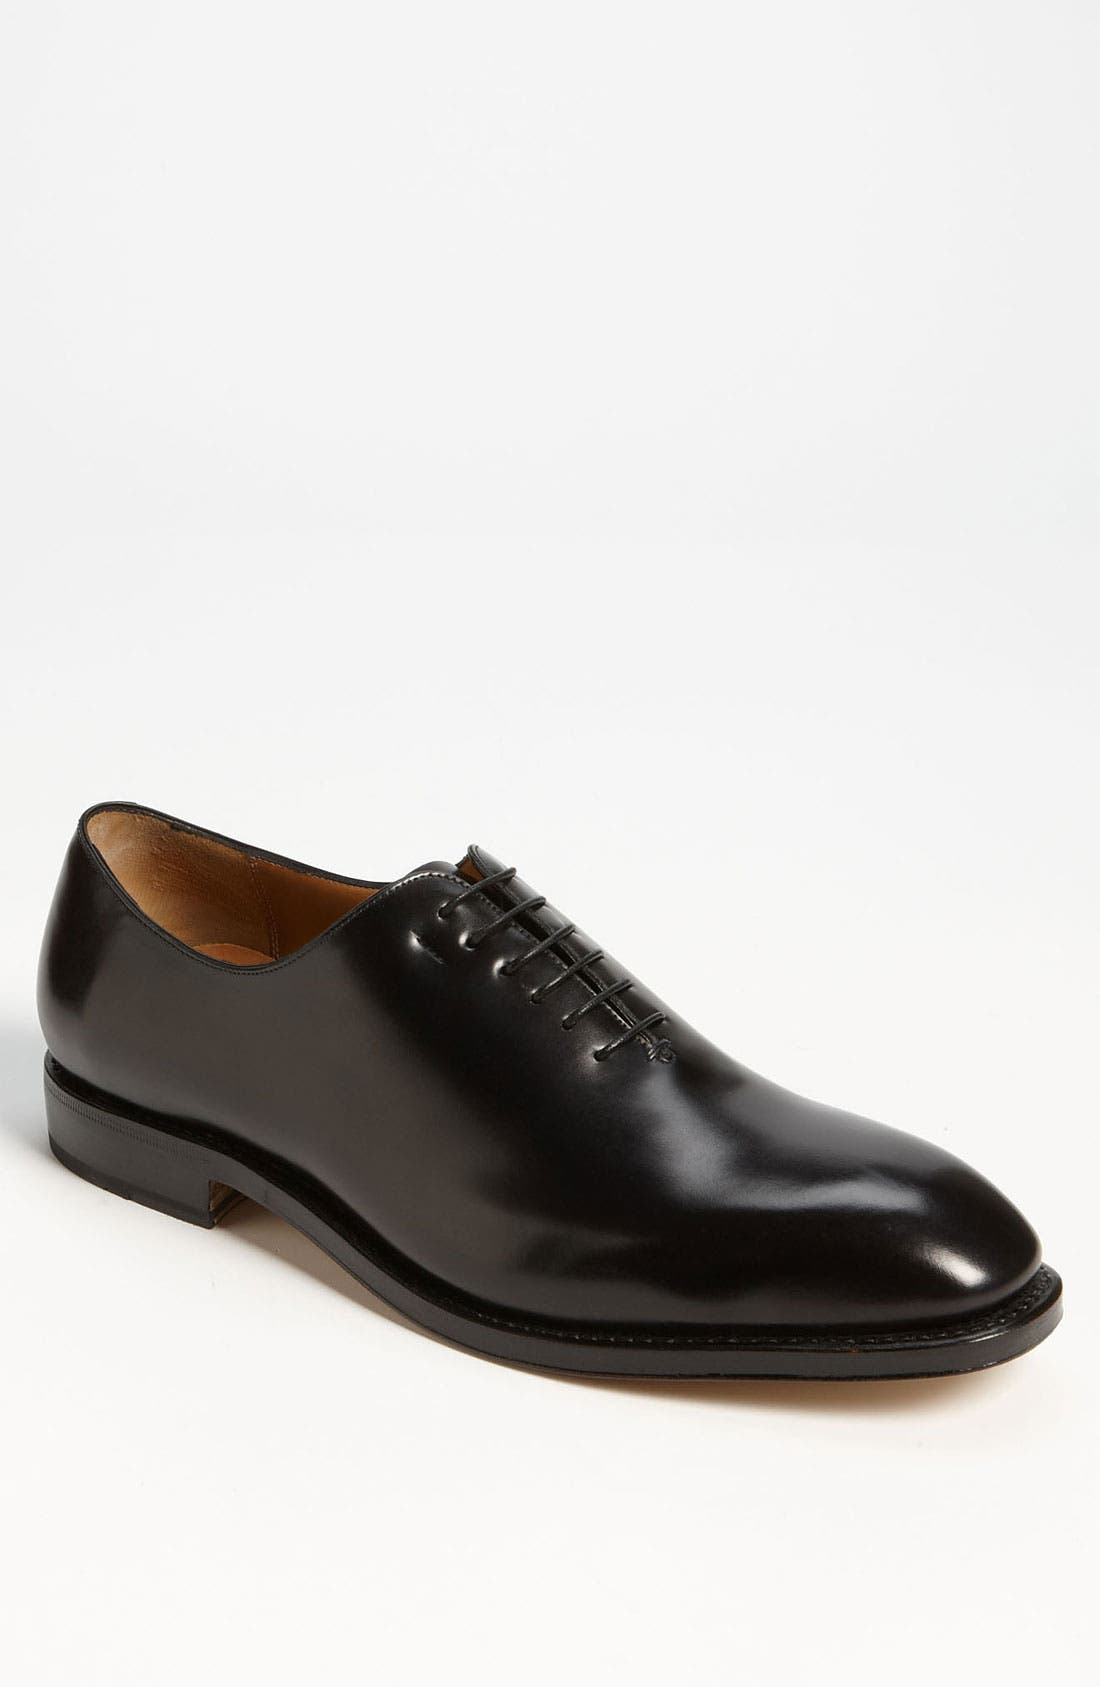 Salvatore Ferragamo Carmello Plain Toe Oxford